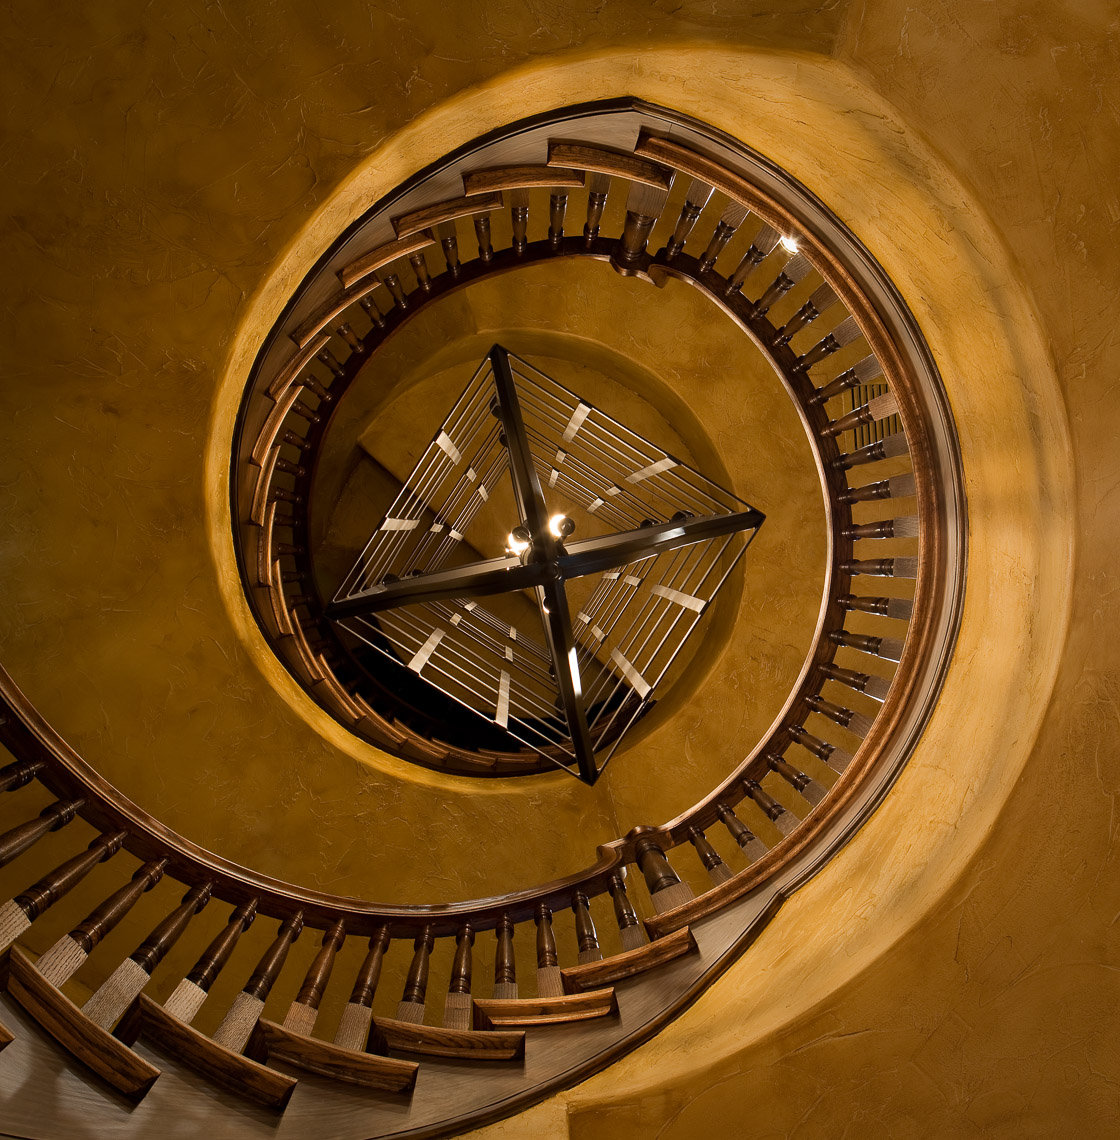 Spiral Staircase - Mark Borosch Photography - Apollo Beach, FL